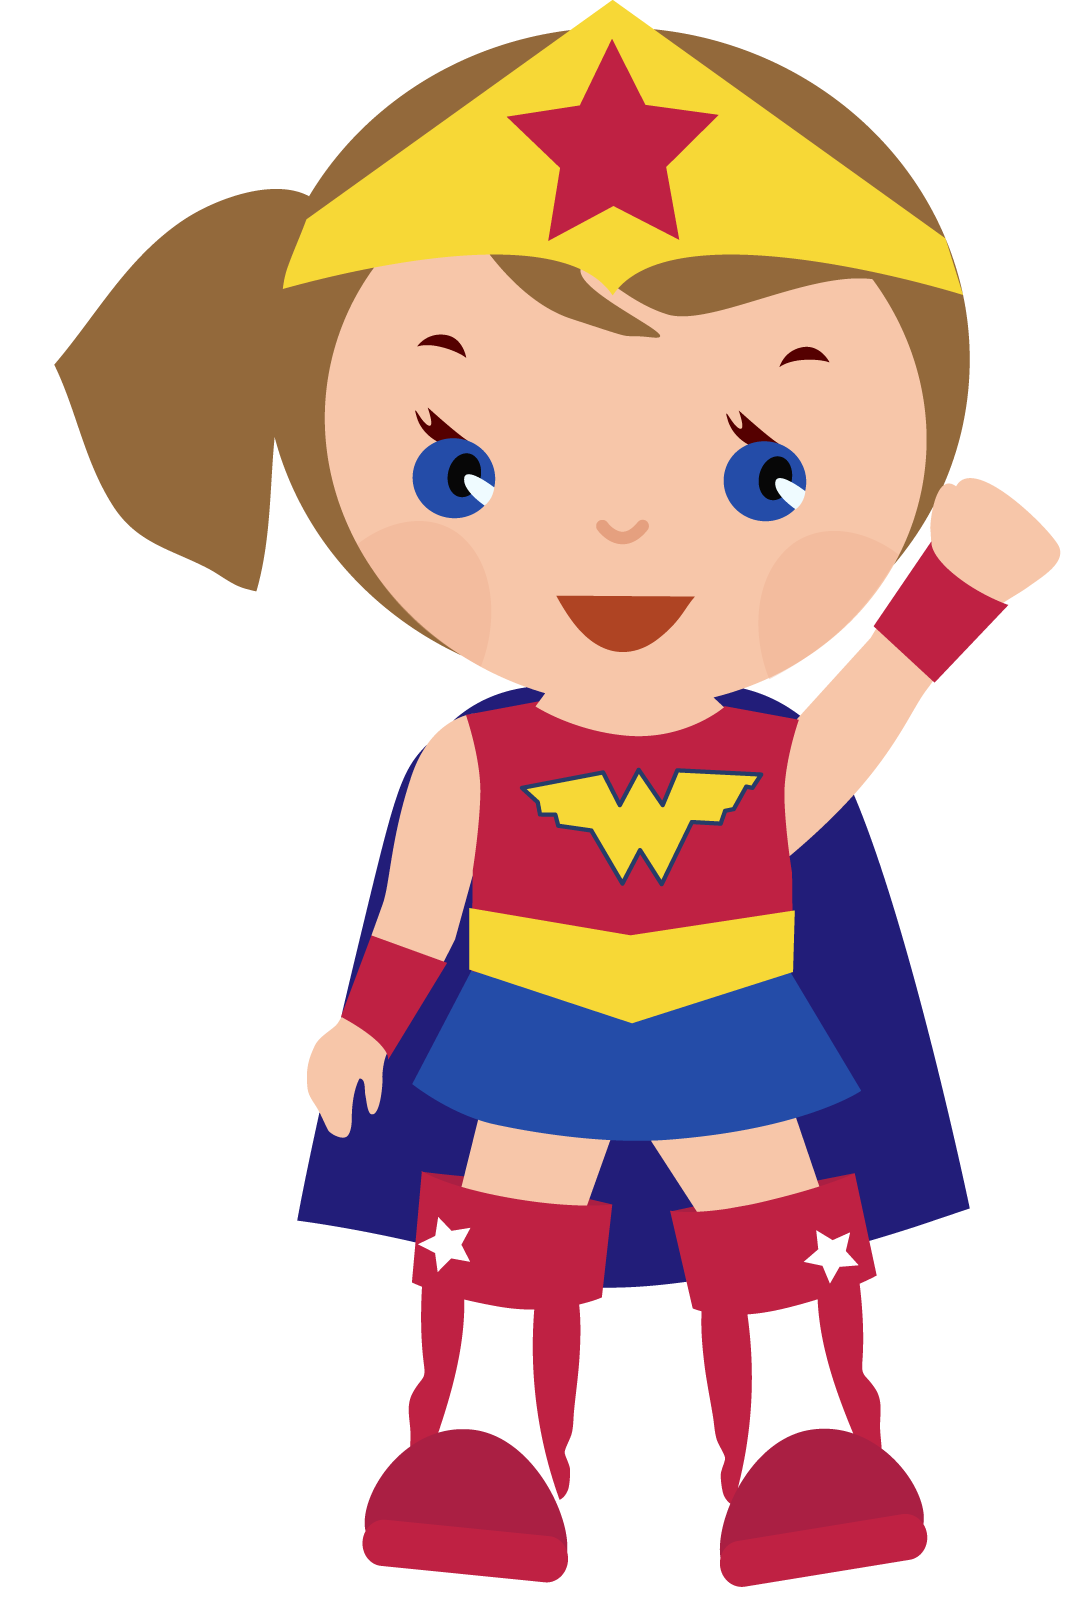 Storytime clipart border. Superhero printables party and